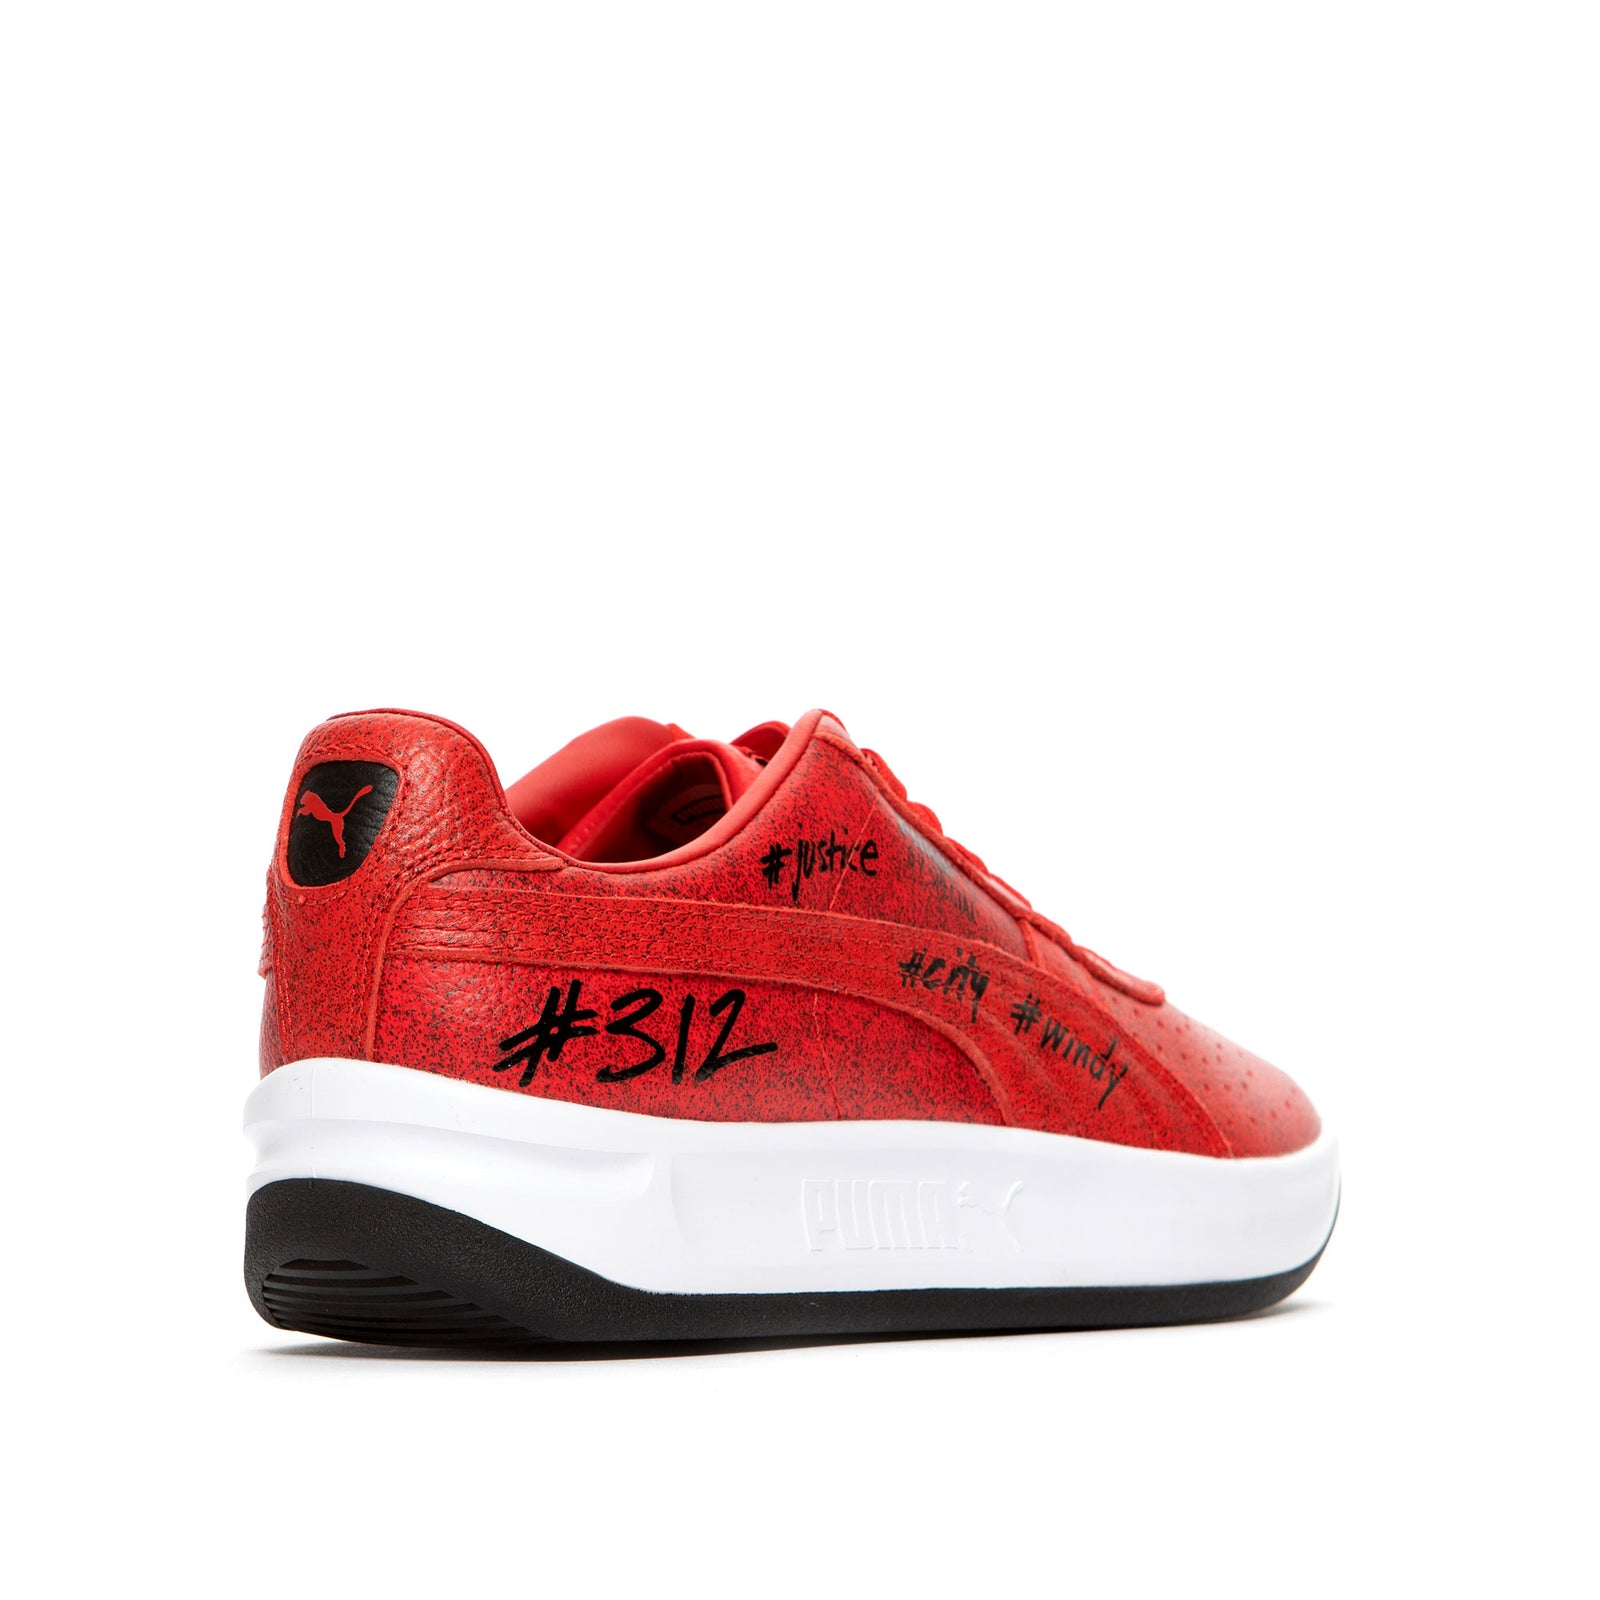 PUMA Men's GV Special $26.99 | Mens athletic shoes sneakers